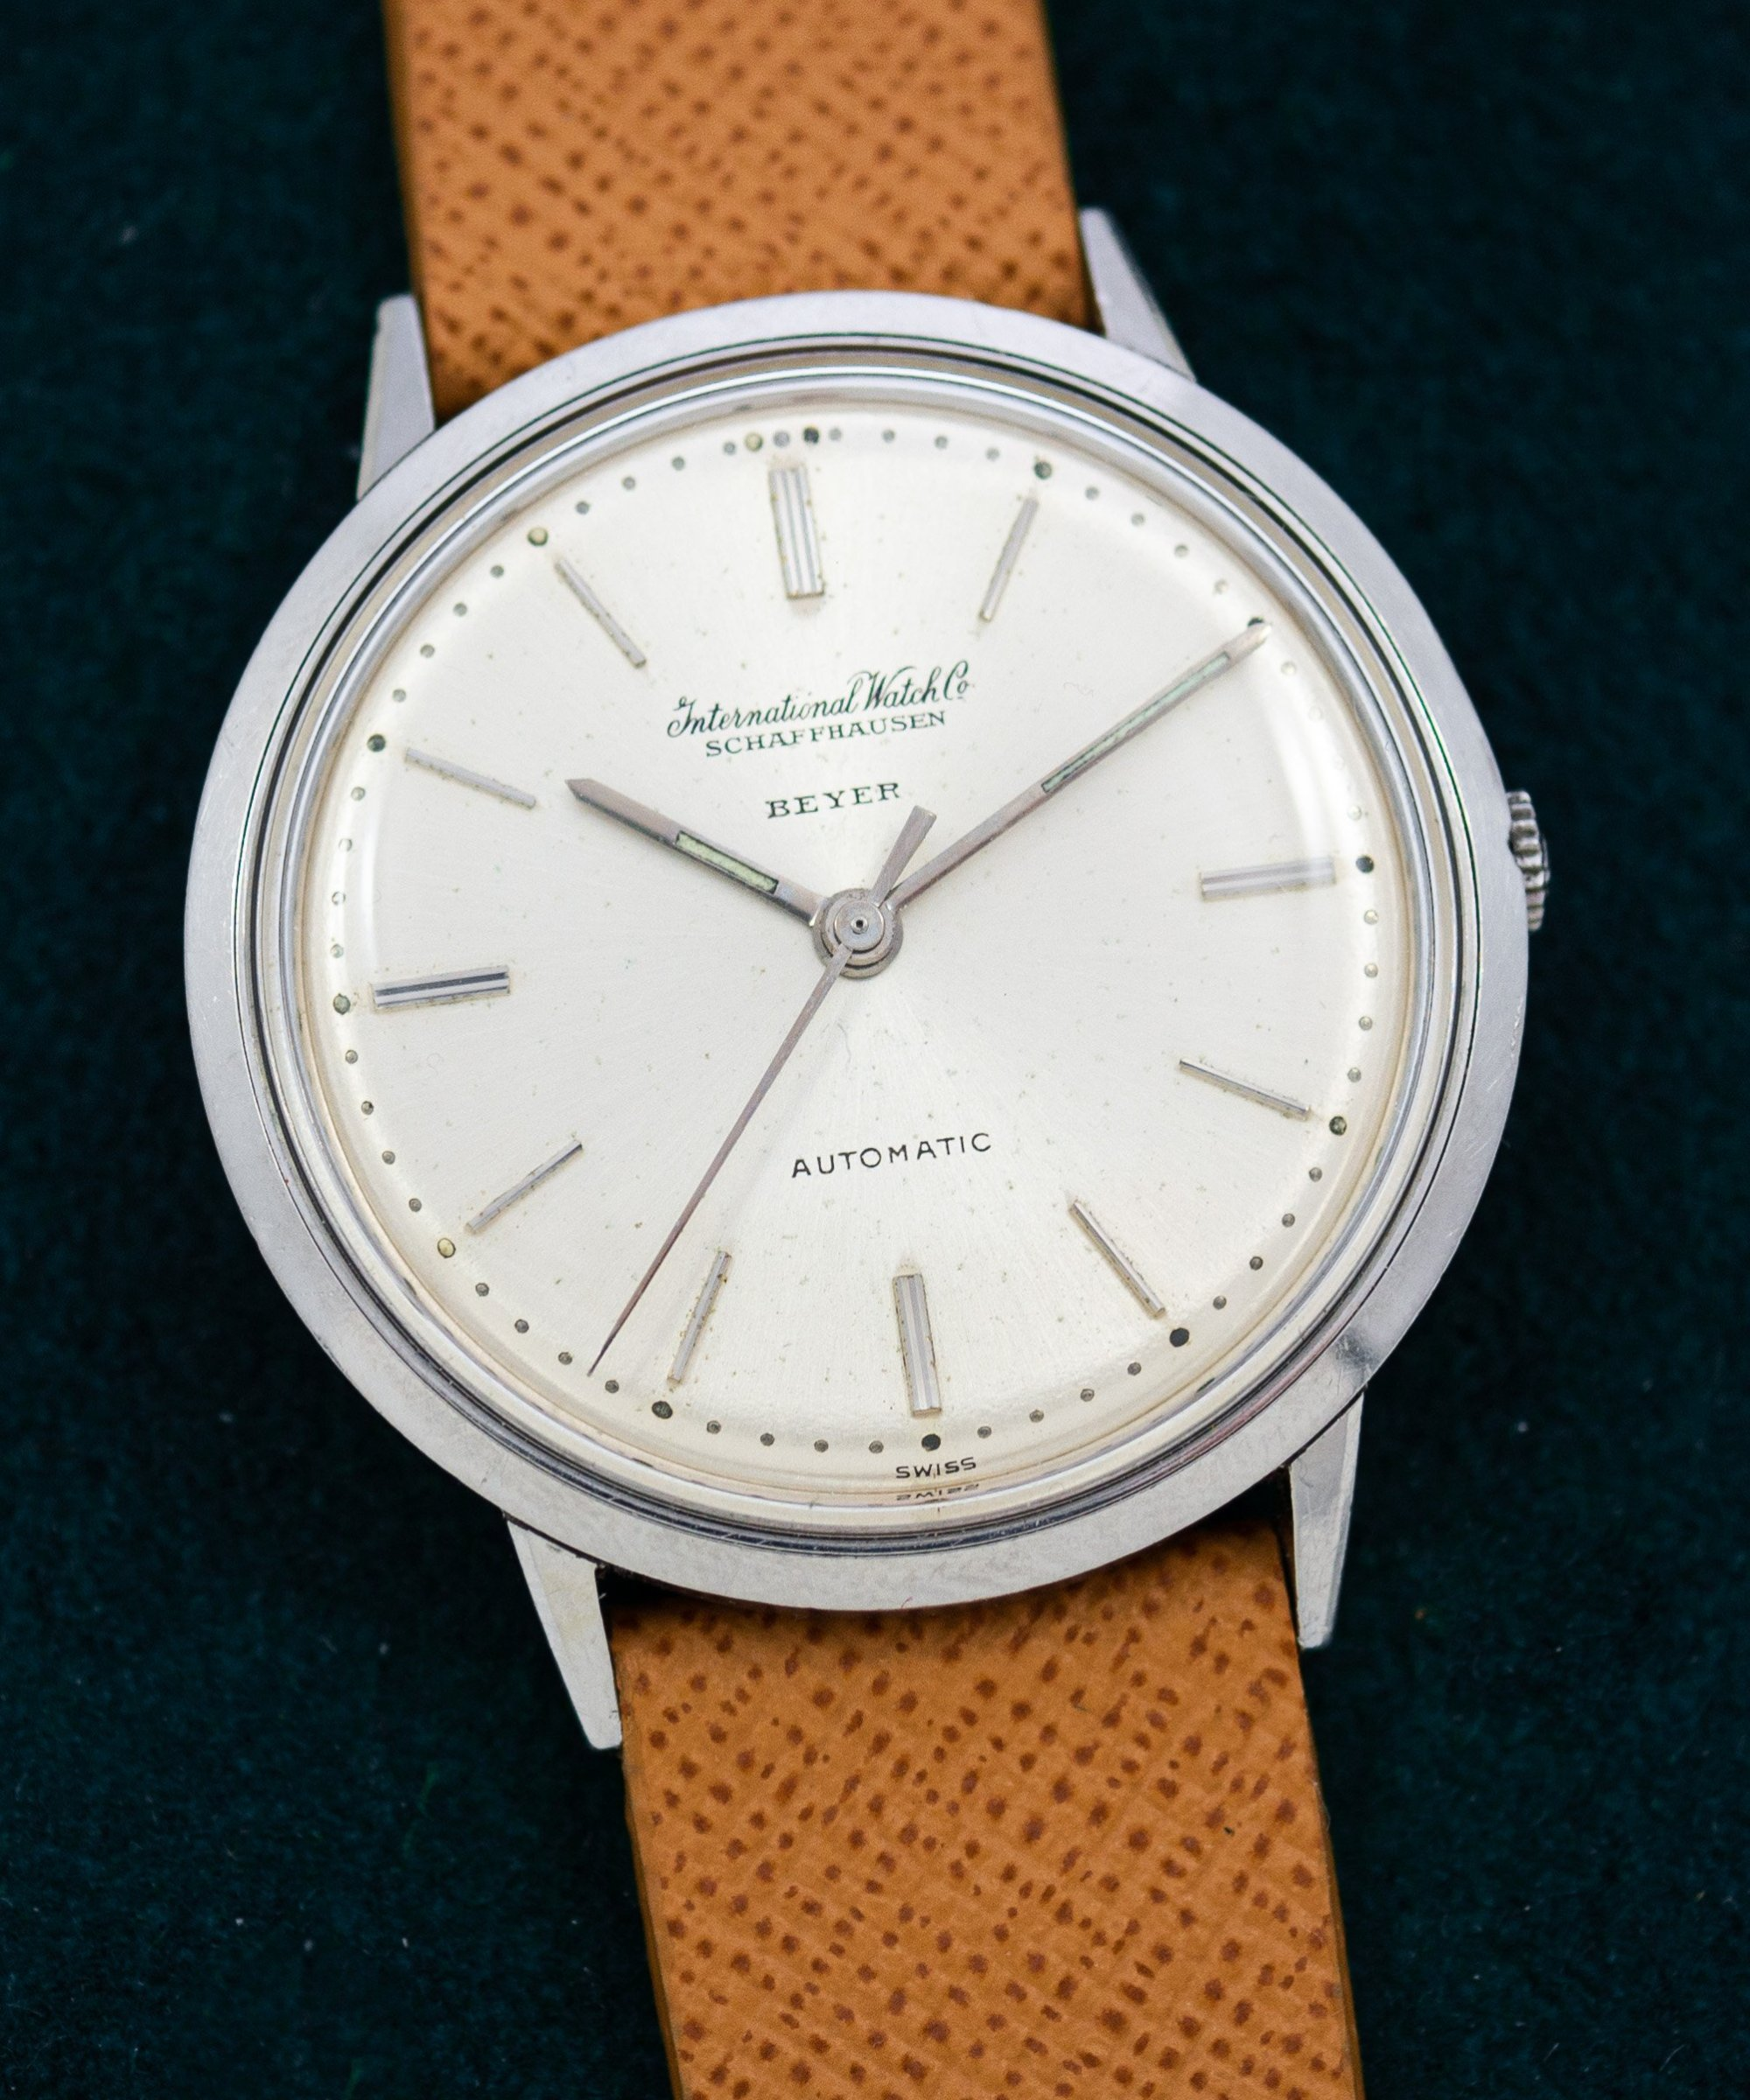 vintage IWC Automatic cal. 845 Beyer Signed dial